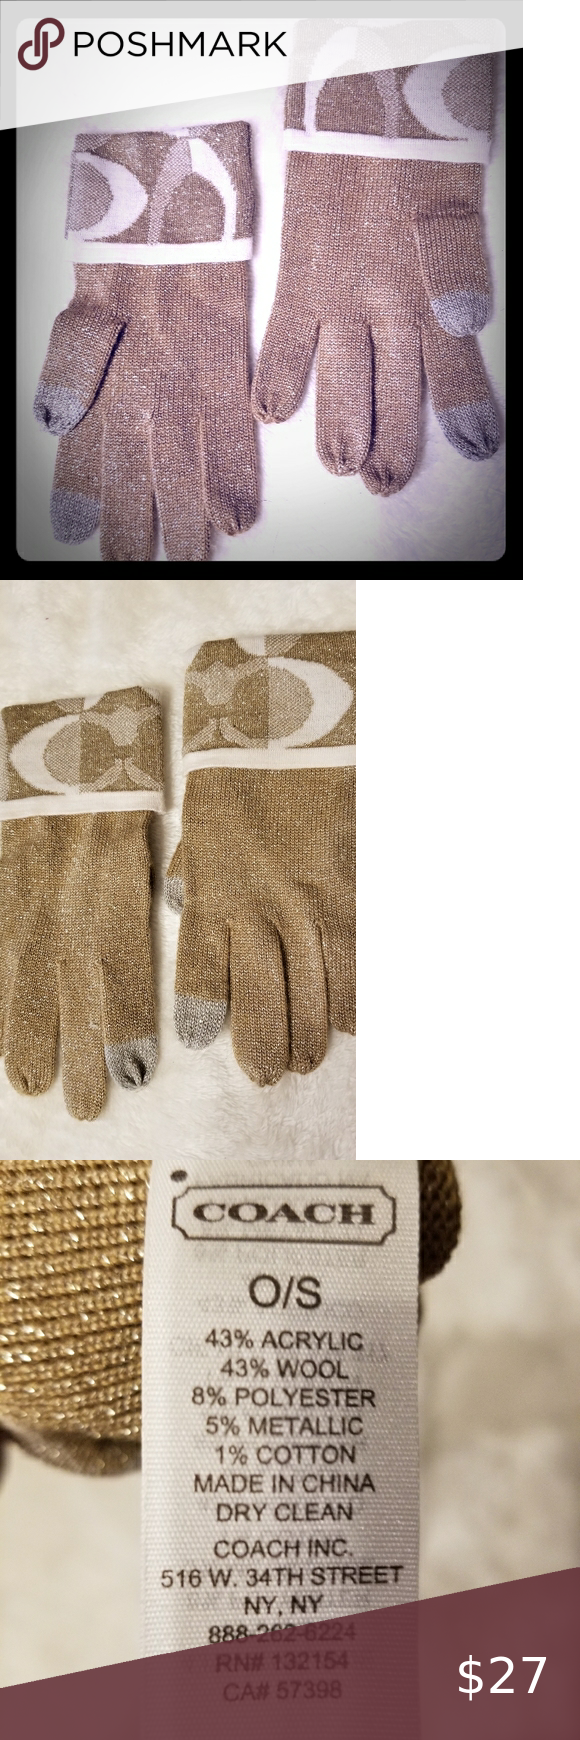 NWOT Coach one size womens gloves New, never used, very nice Coach gloves. Finge... - #coach #finge #gloves #never #nice #NWOT #Size #Womens